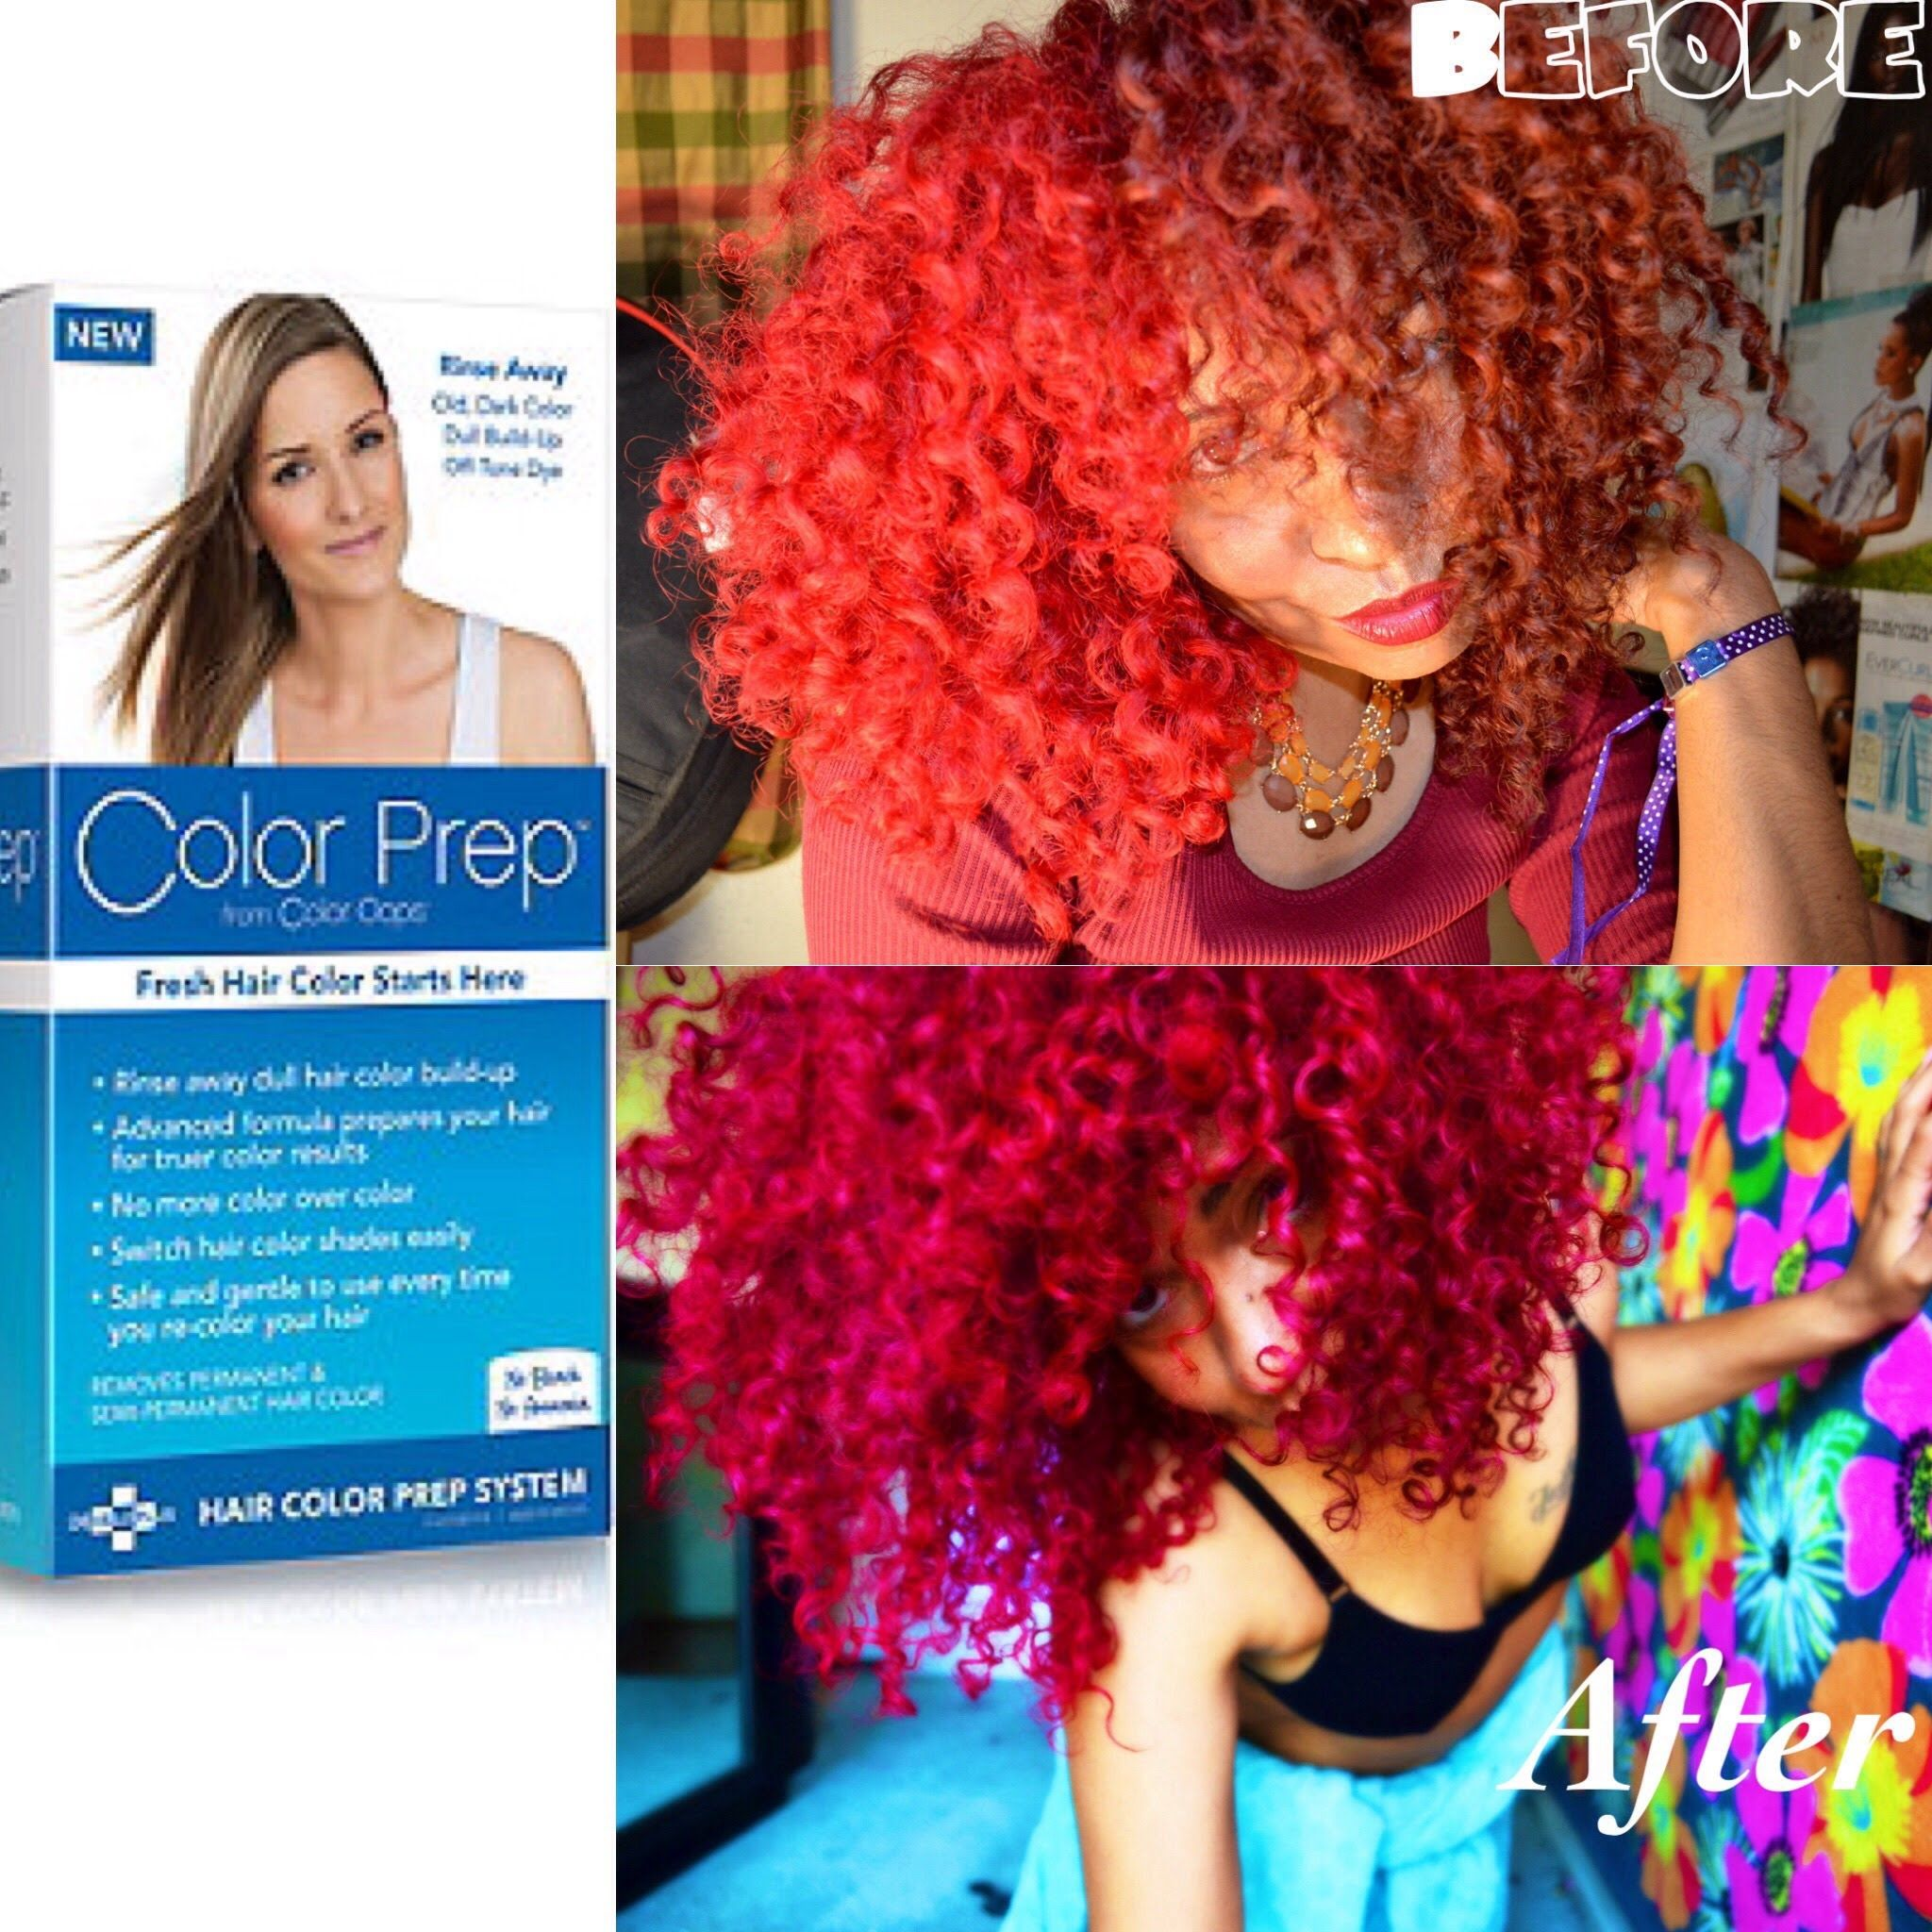 How i colour my hair using natural haircolor youtube - Find This Pin And More On Youtube By Naturallysymone Tutorial On How I Use Color Oops Color Prep To Remove Temporary Hair Dye